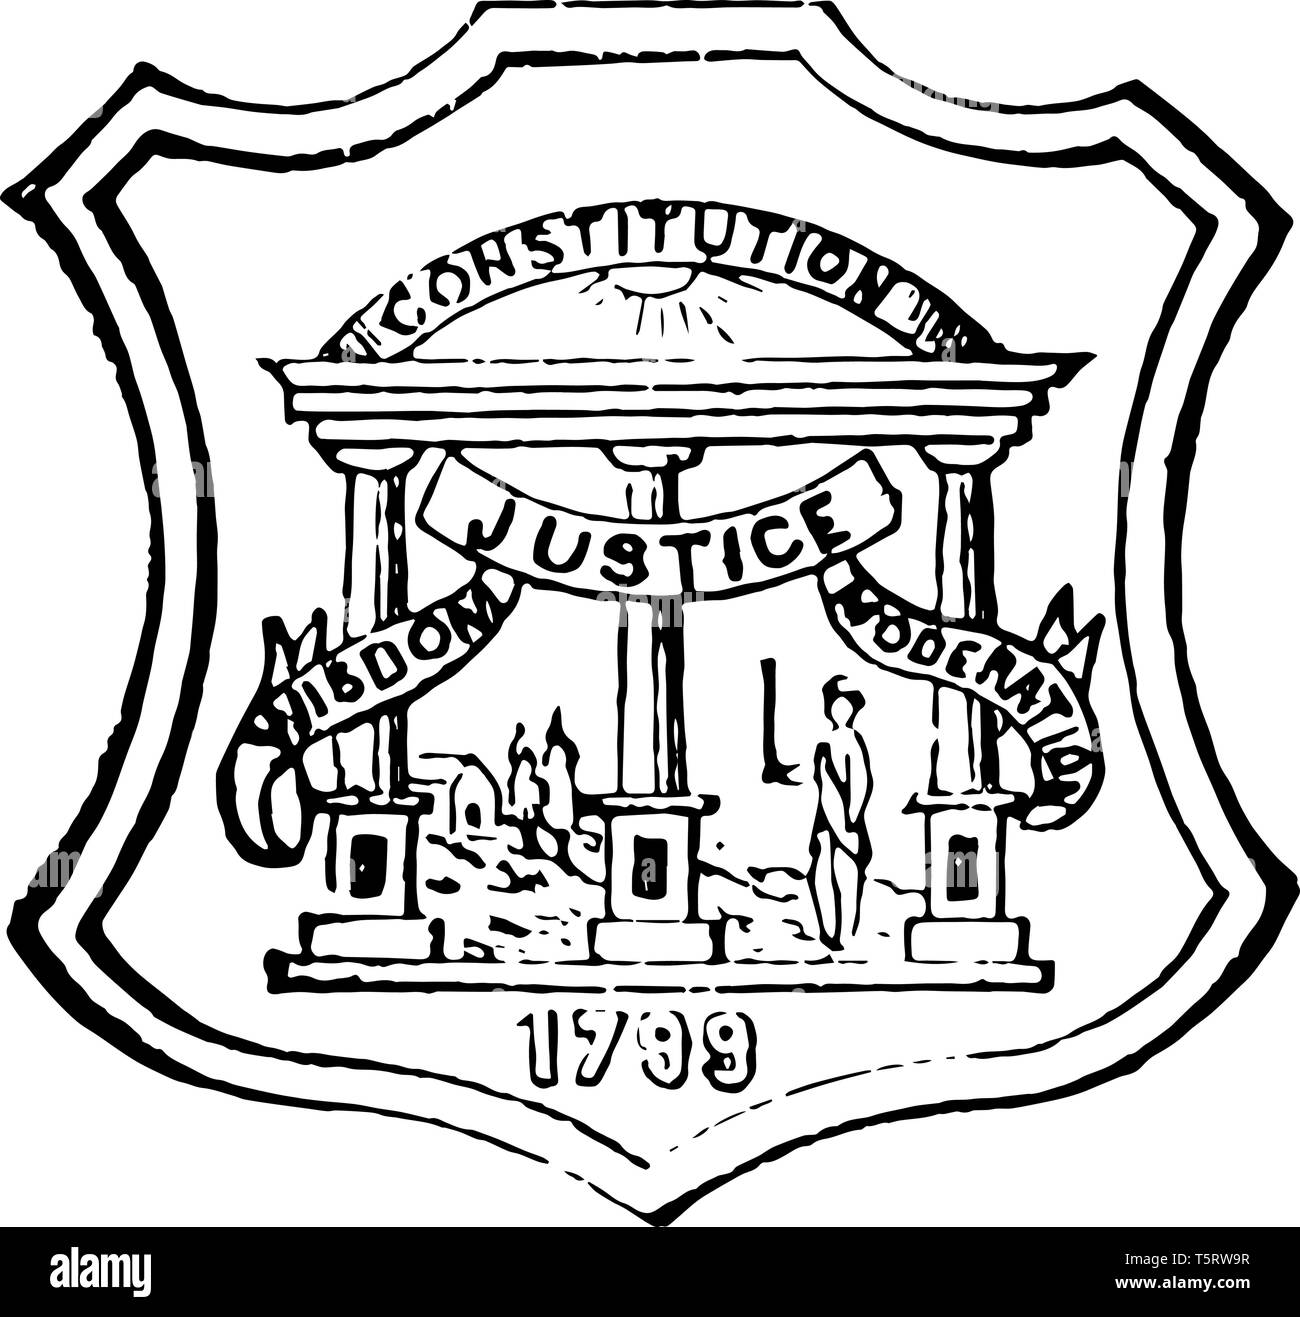 Georgia State Seal Is Symbol Of Authority And Sovereignty Vintage Line Drawing Stock Vector Image Art Alamy